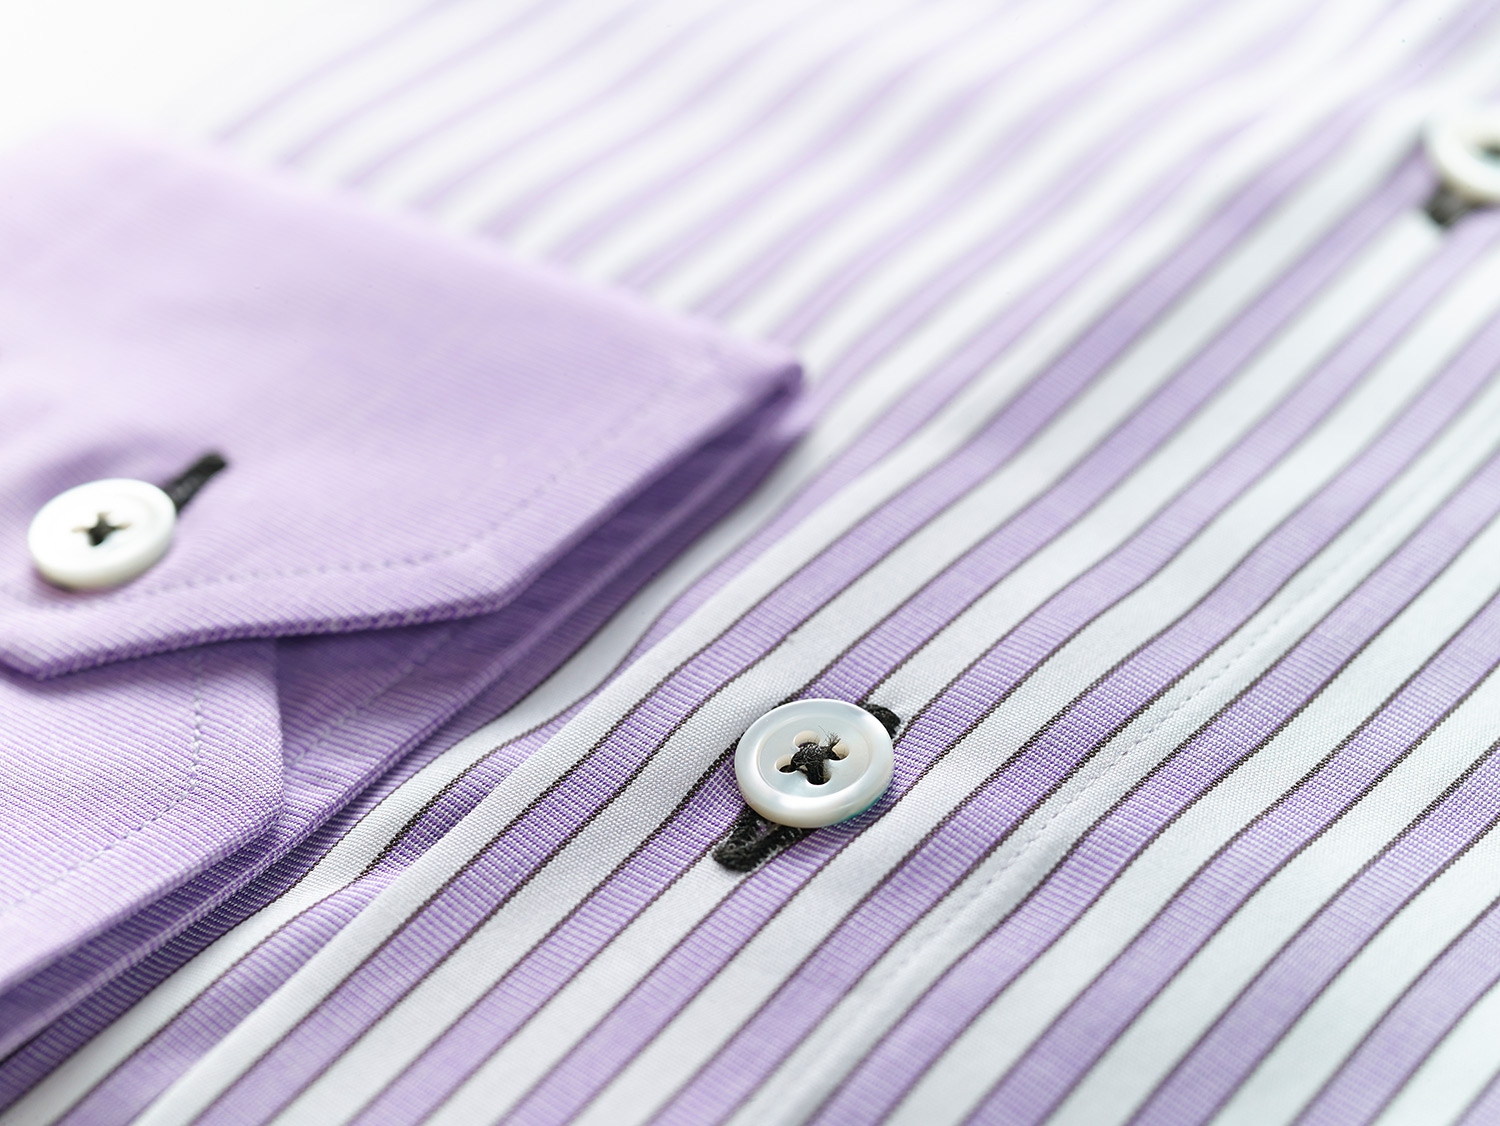 Etrusca-Collezione-Tre-Giorno-Purple-Brown-Stripes-Purple-Collar-Cuff-Details-002.jpg